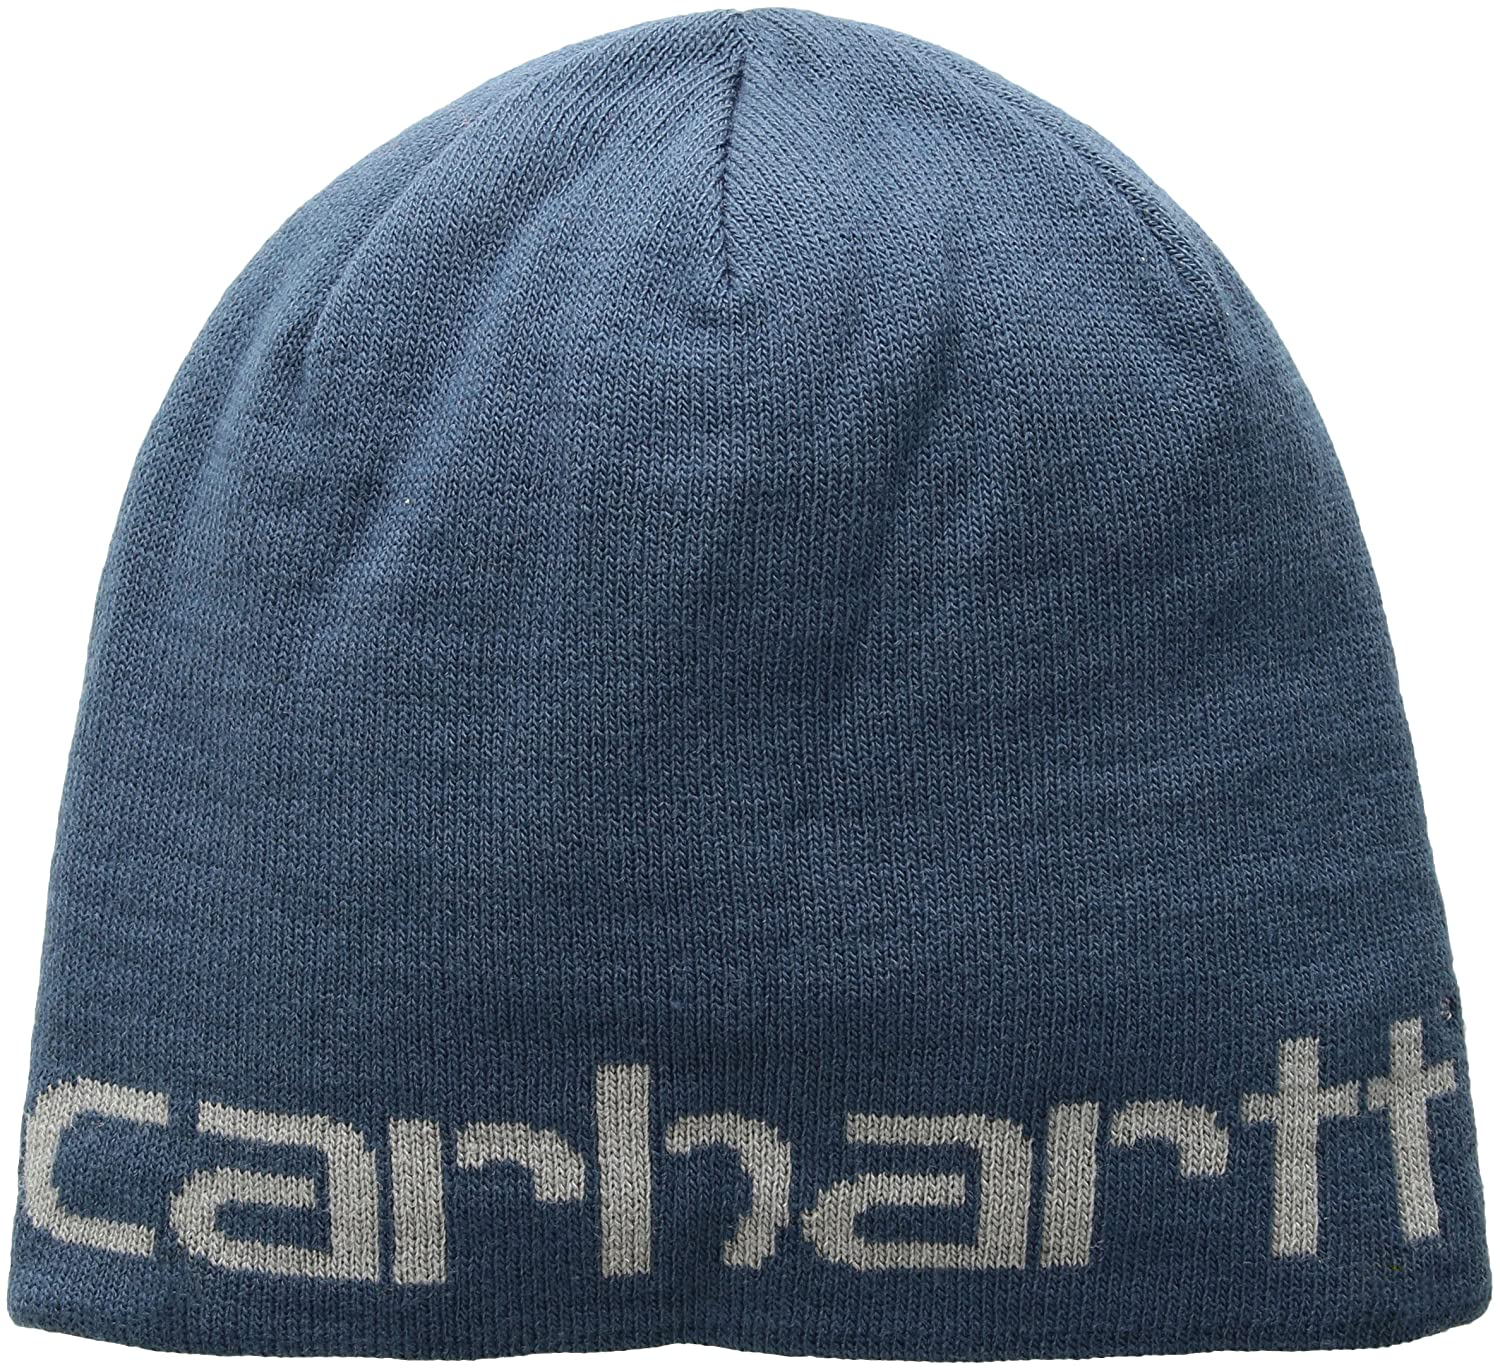 1194bbed7 Carhartt Mens Greenfield Reversible Hat